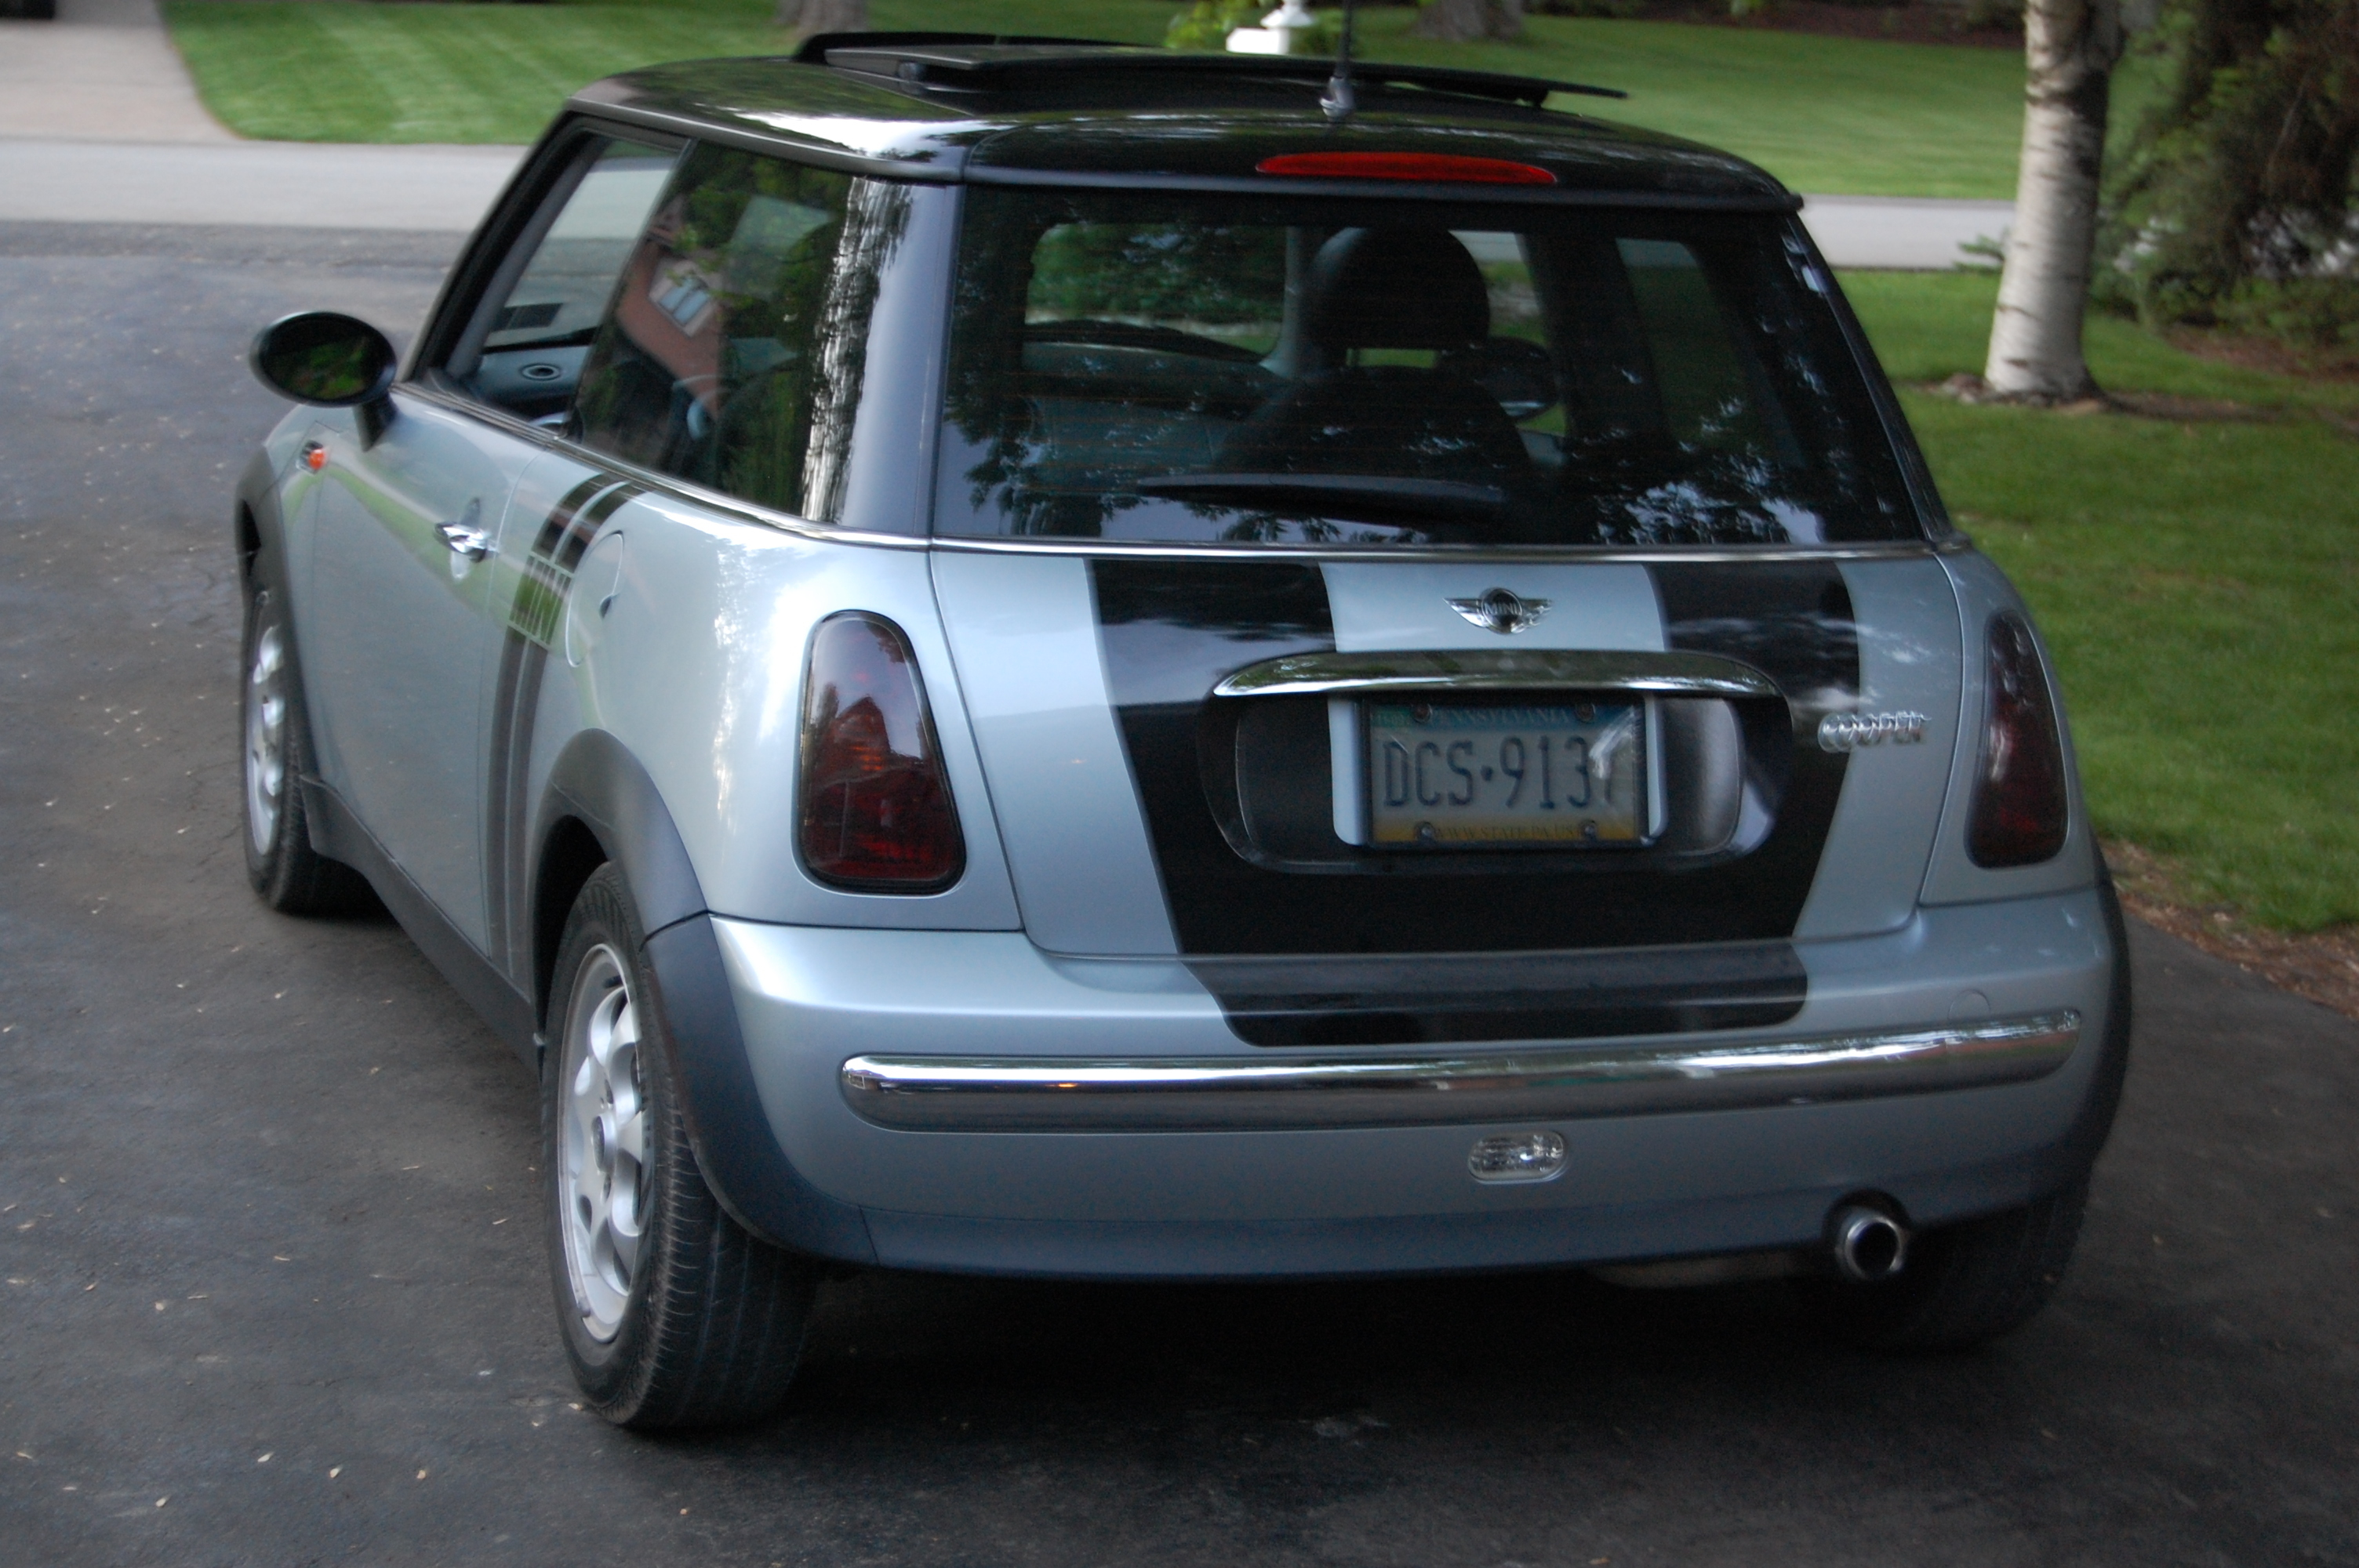 dansr50 39 s 2002 mini cooper in greensburg pa. Black Bedroom Furniture Sets. Home Design Ideas